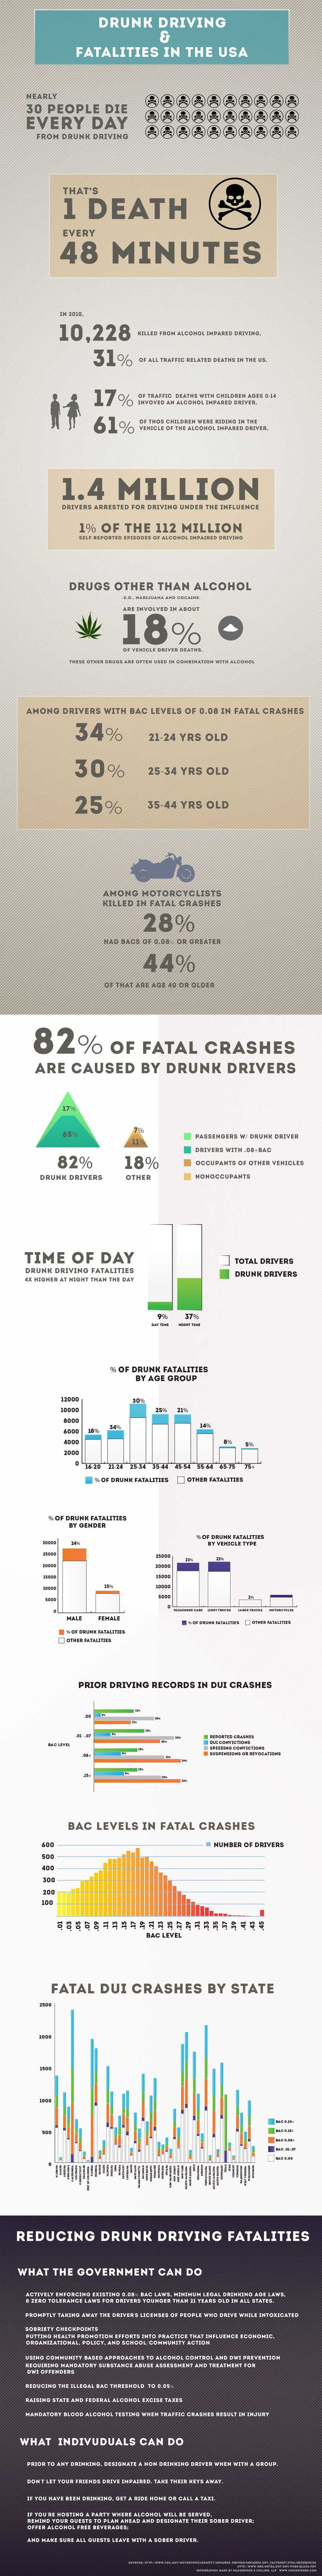 Scary Stats: Drunk Driving & Fatalities in the US